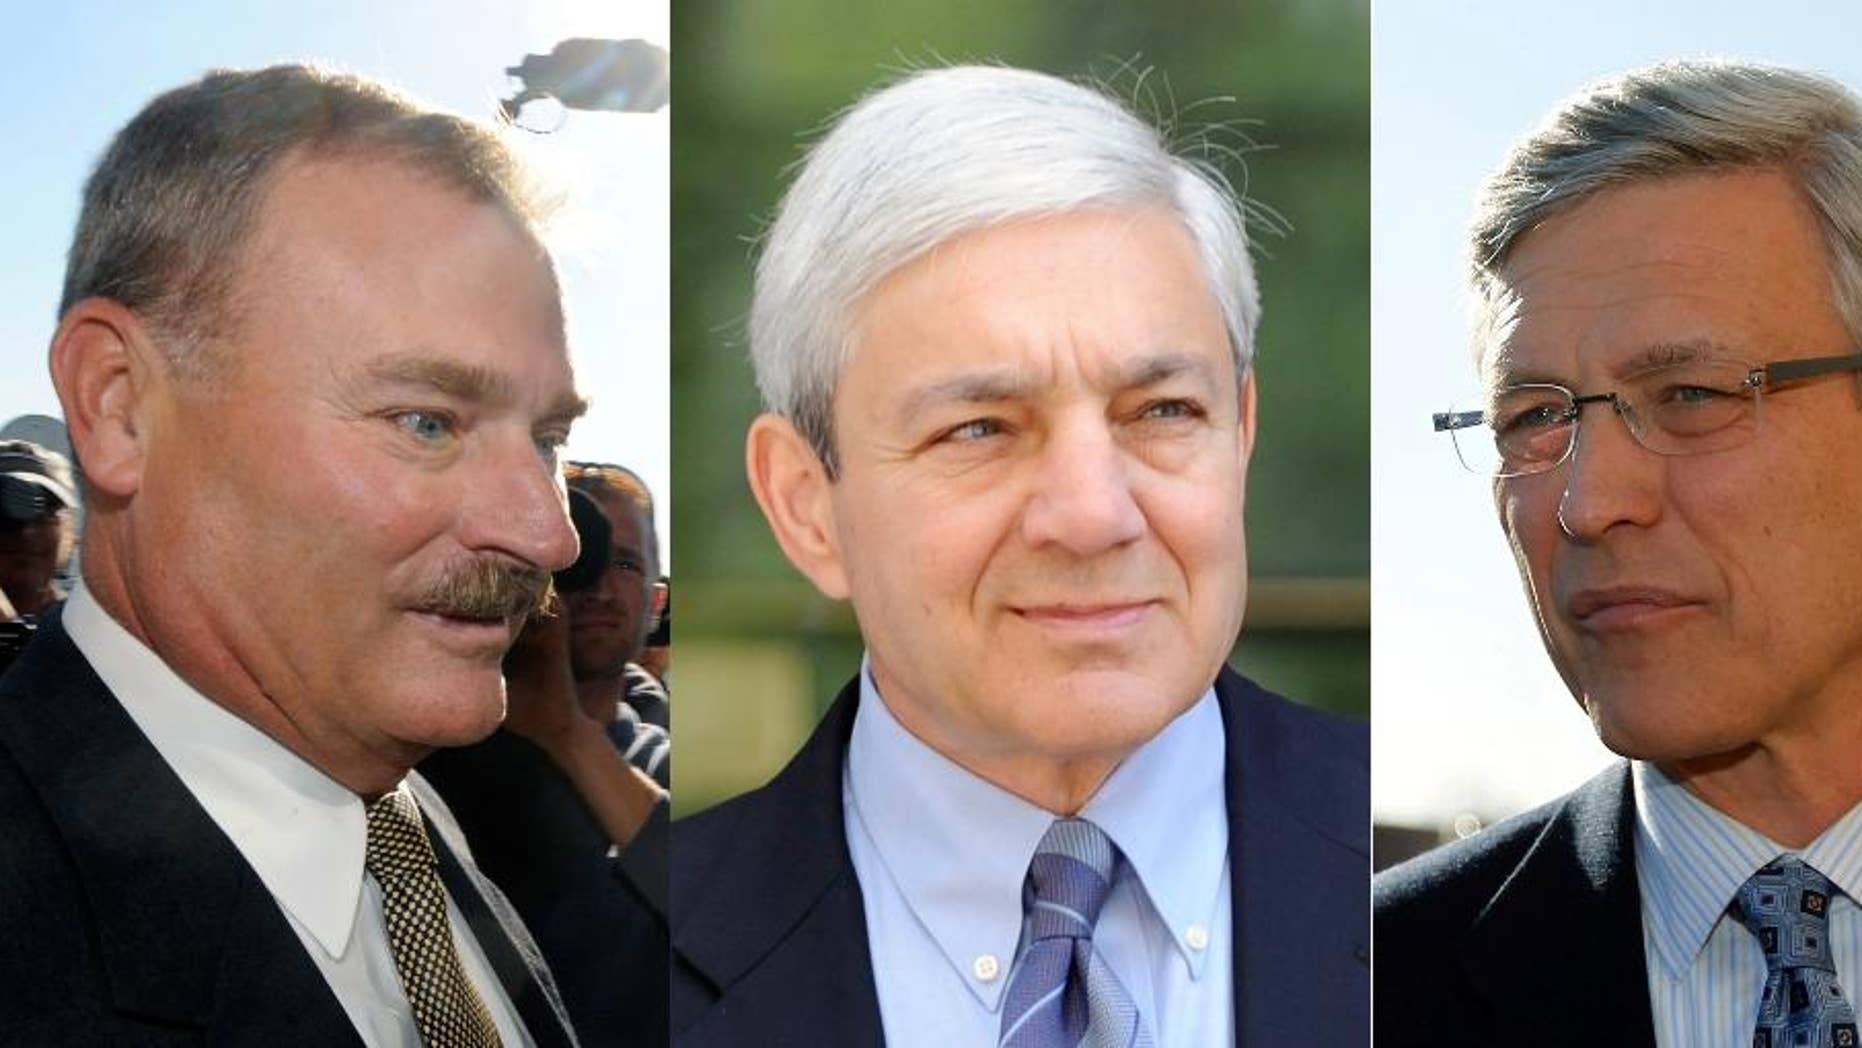 FILE - This combination of 2011 and 2013 photo shows, from left, former Penn State vice president Gary Schultz, former Penn State president Graham Spanier, and former Penn State director of athletics Tim Curley in Harrisburg, Pa.  A Pennsylvania appeals court said Wednesday, March 30, 2016,  it won't reconsider a recent decision throwing out some of the most serious criminal charges against three former Penn State administrators related to their handling of the Jerry Sandusky child molestation scandal.  (AP Photo/Brad Bower, Matt Rourke)